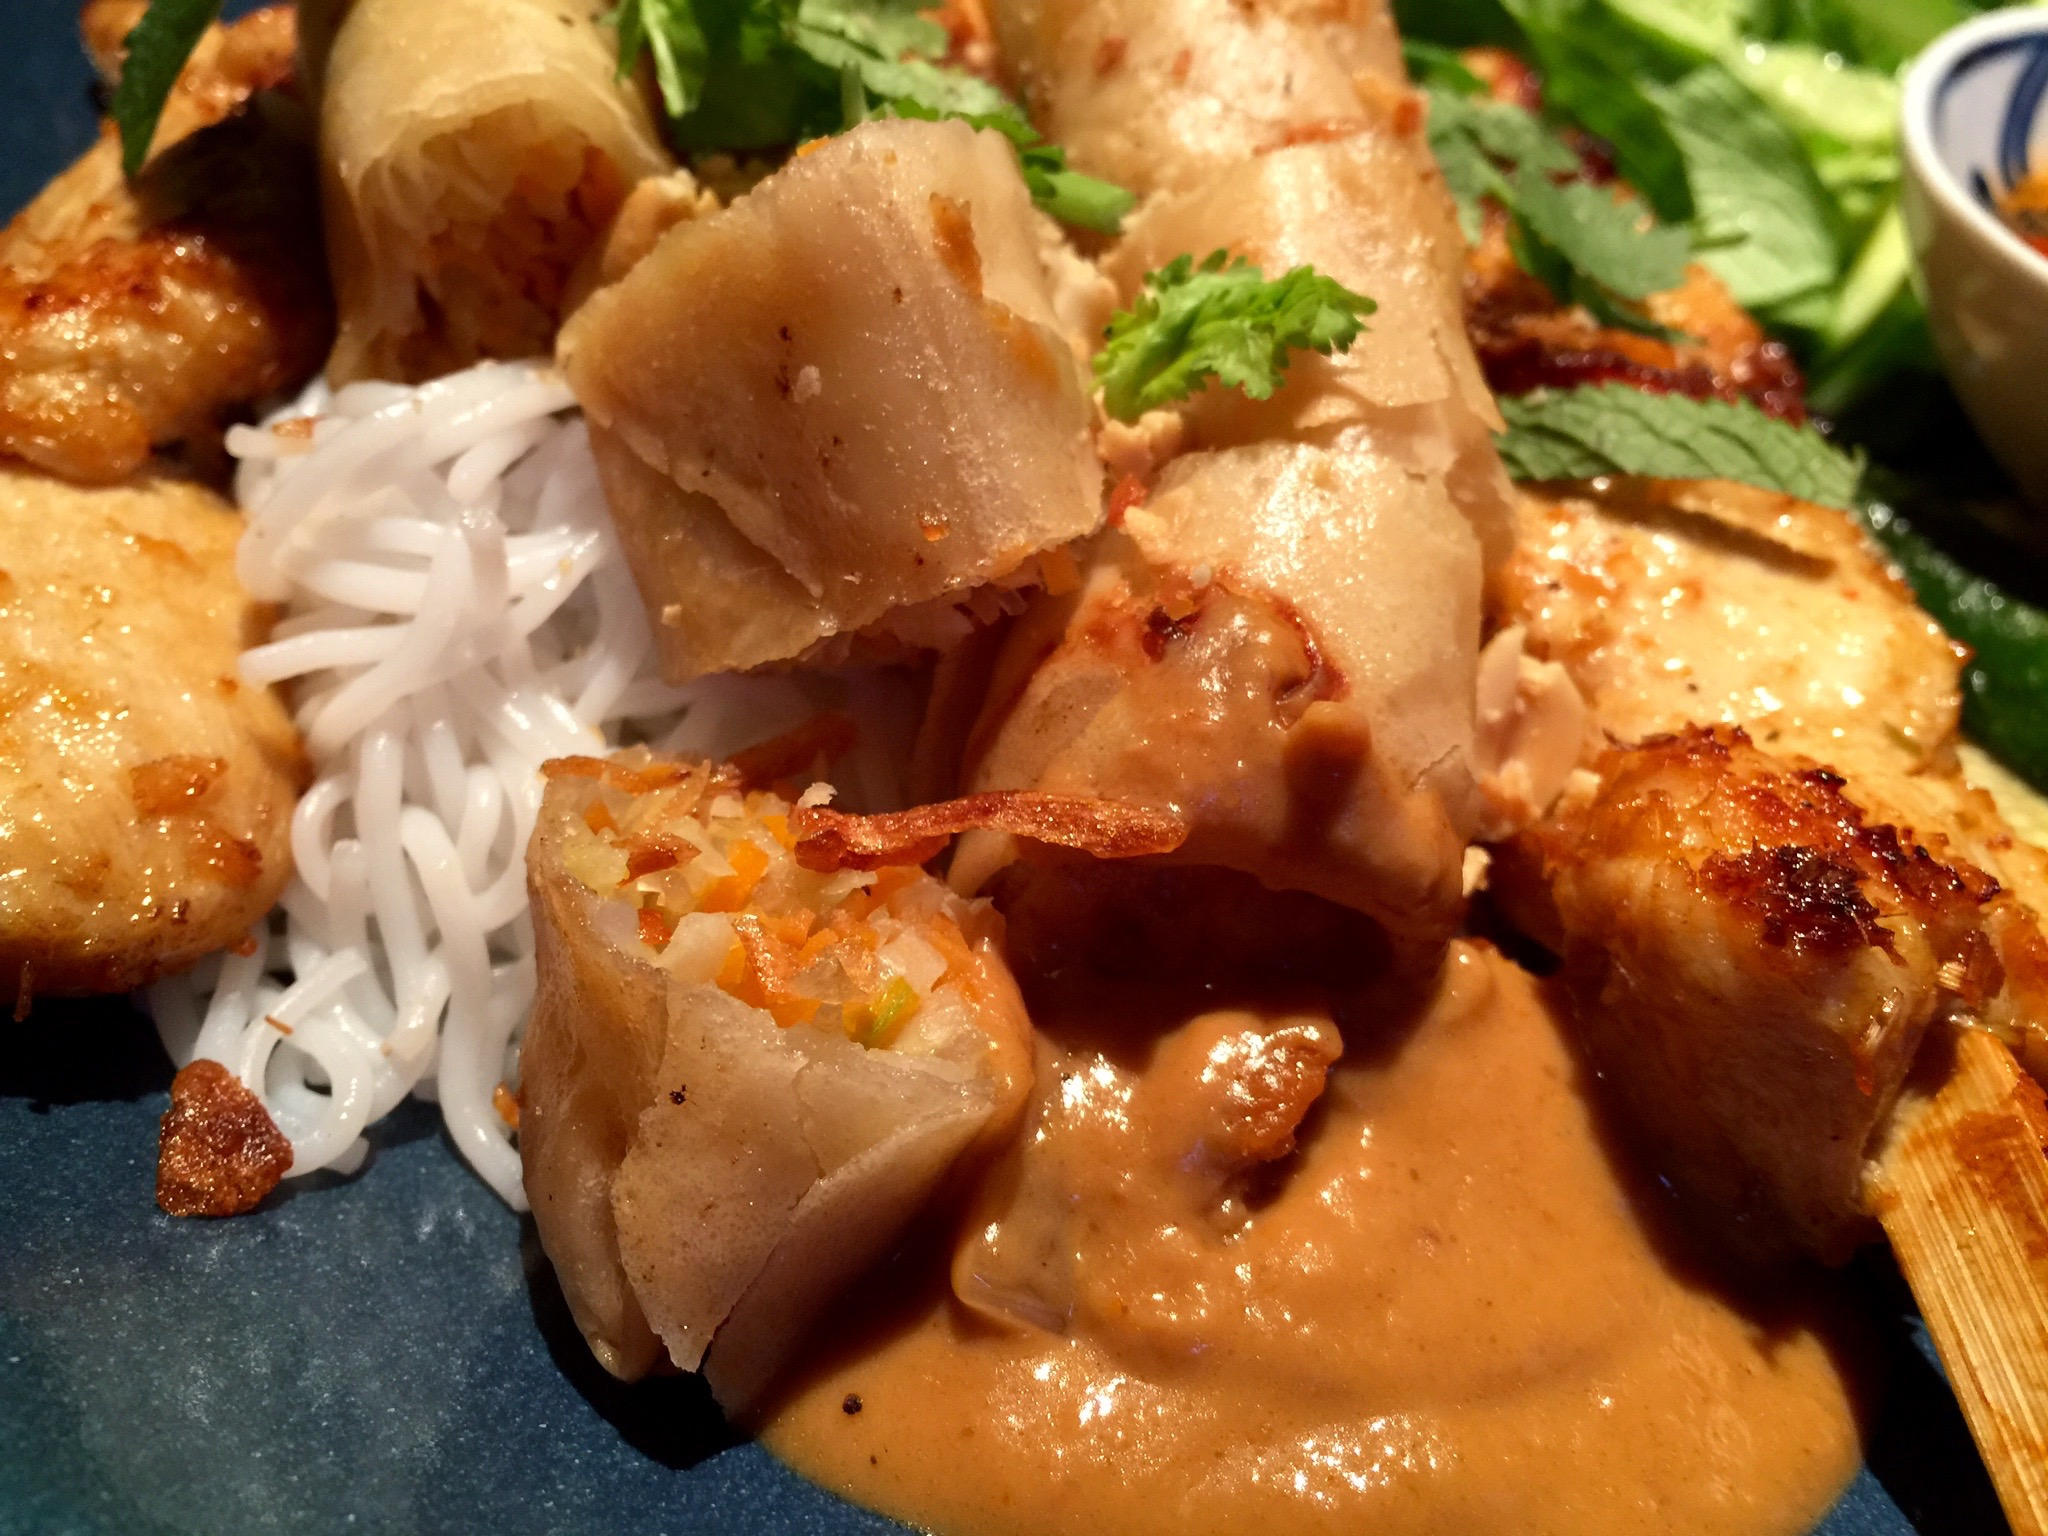 A close up shot of my fried spring rolls, lemongrass chicken skewers, and peanut sauce over rice noodles